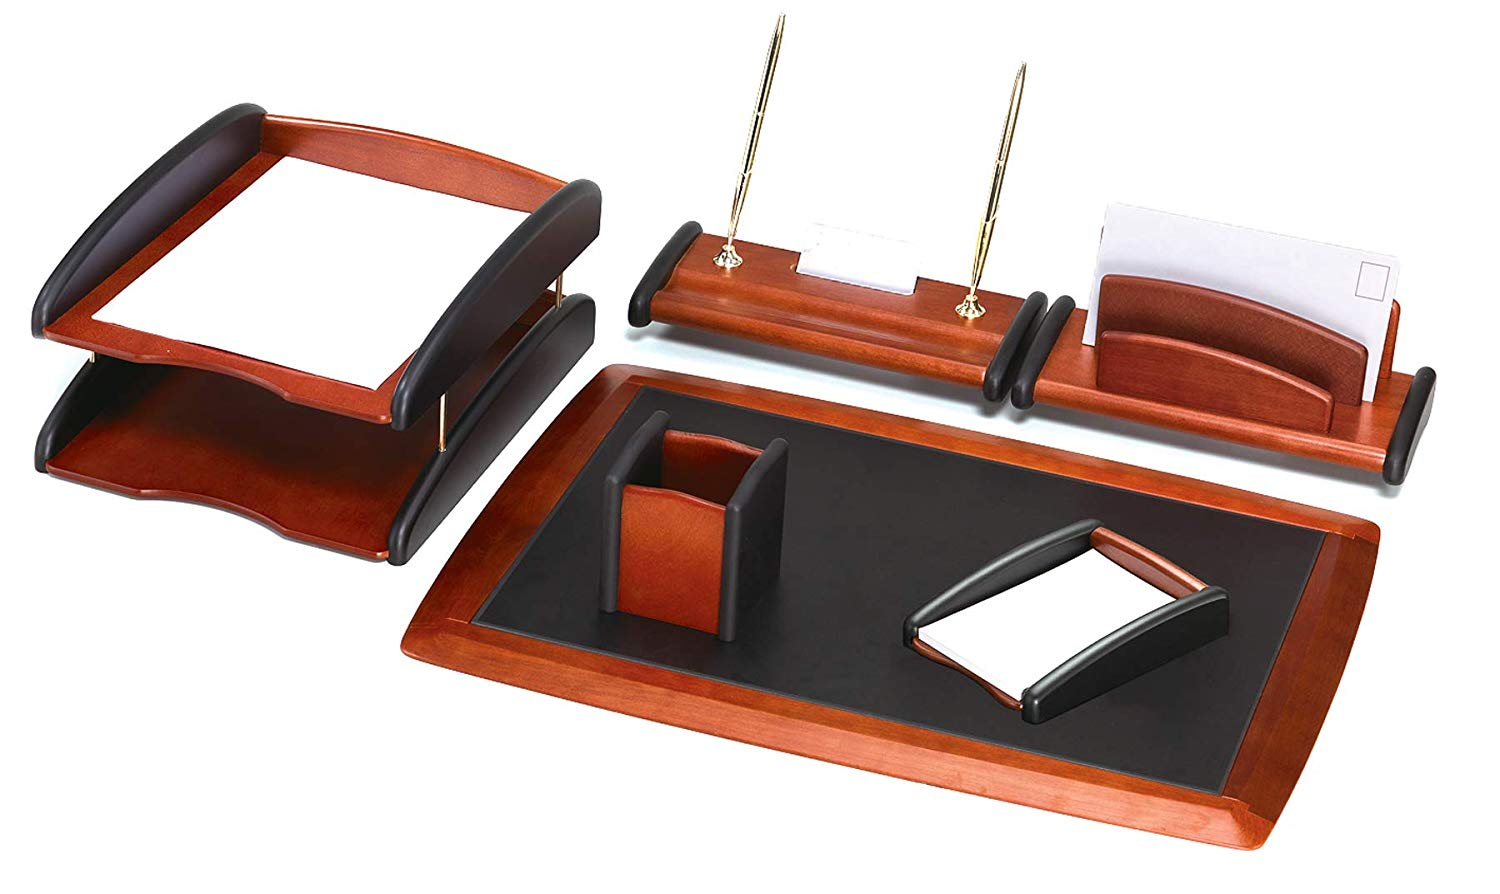 Colonial Pine Wood Finish & MDF 6-Piece Desk Organizer Set Includes a Full Desk Pad, Two-Tier Document Filing Tray, Memo Holder, Pencil/Pen Holder, Letter Holder, Office Desk Pen Holder